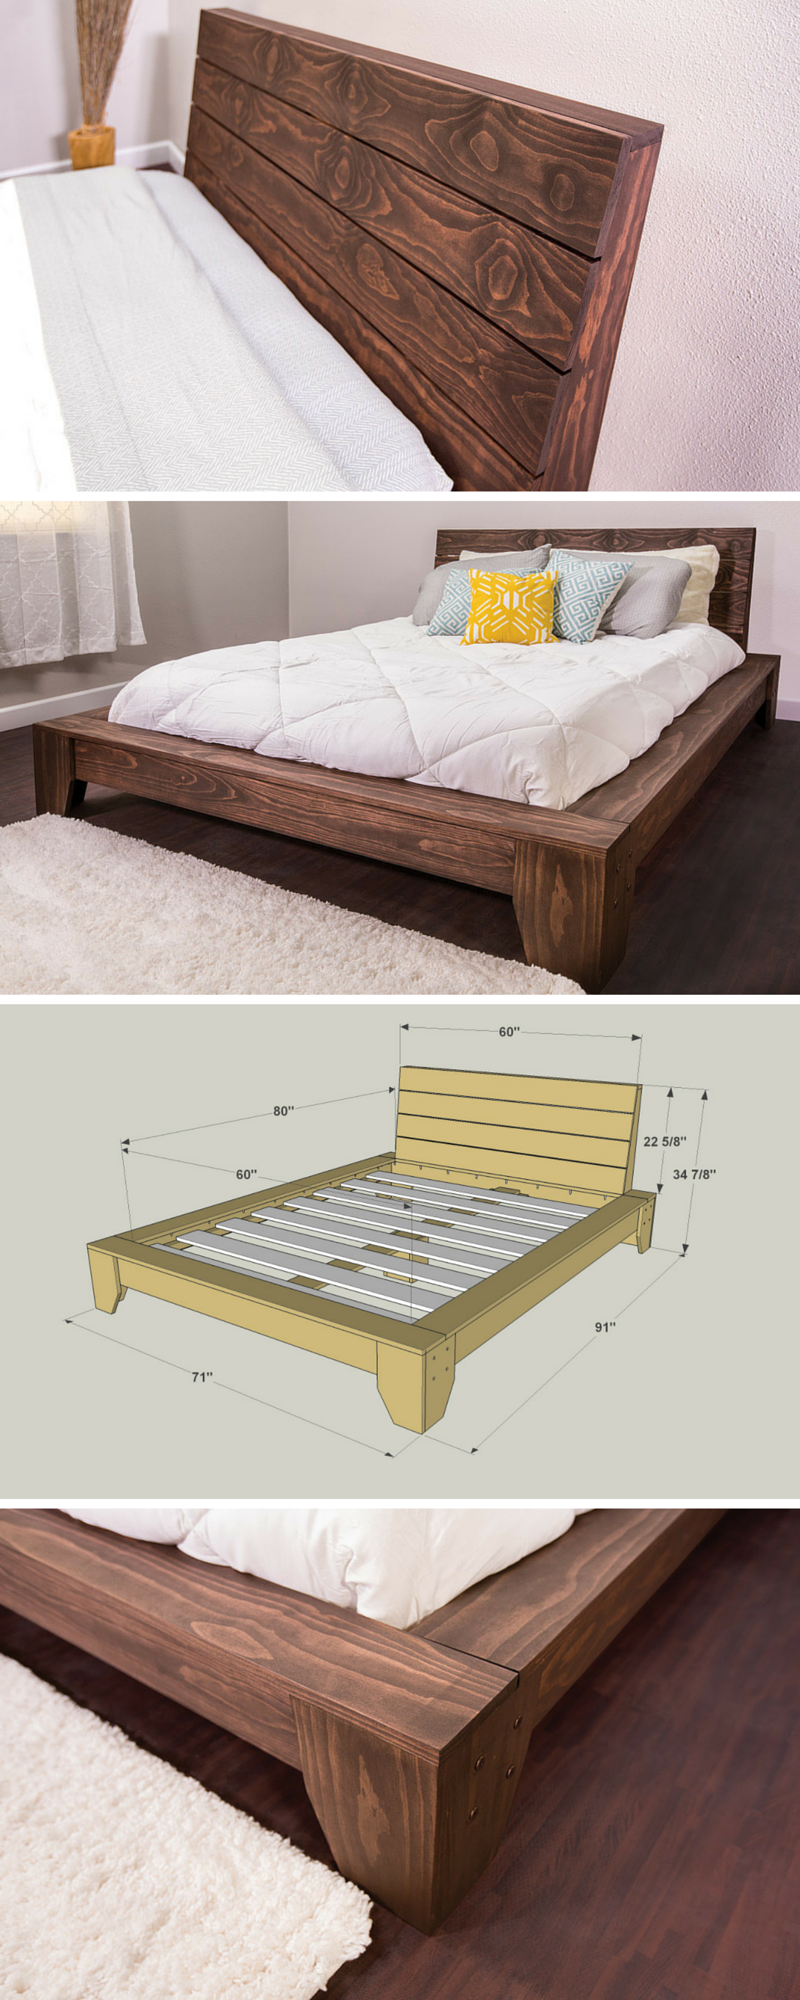 36 easy diy bed frame projects to upgrade your bedroom - Cool queen bed frames ...